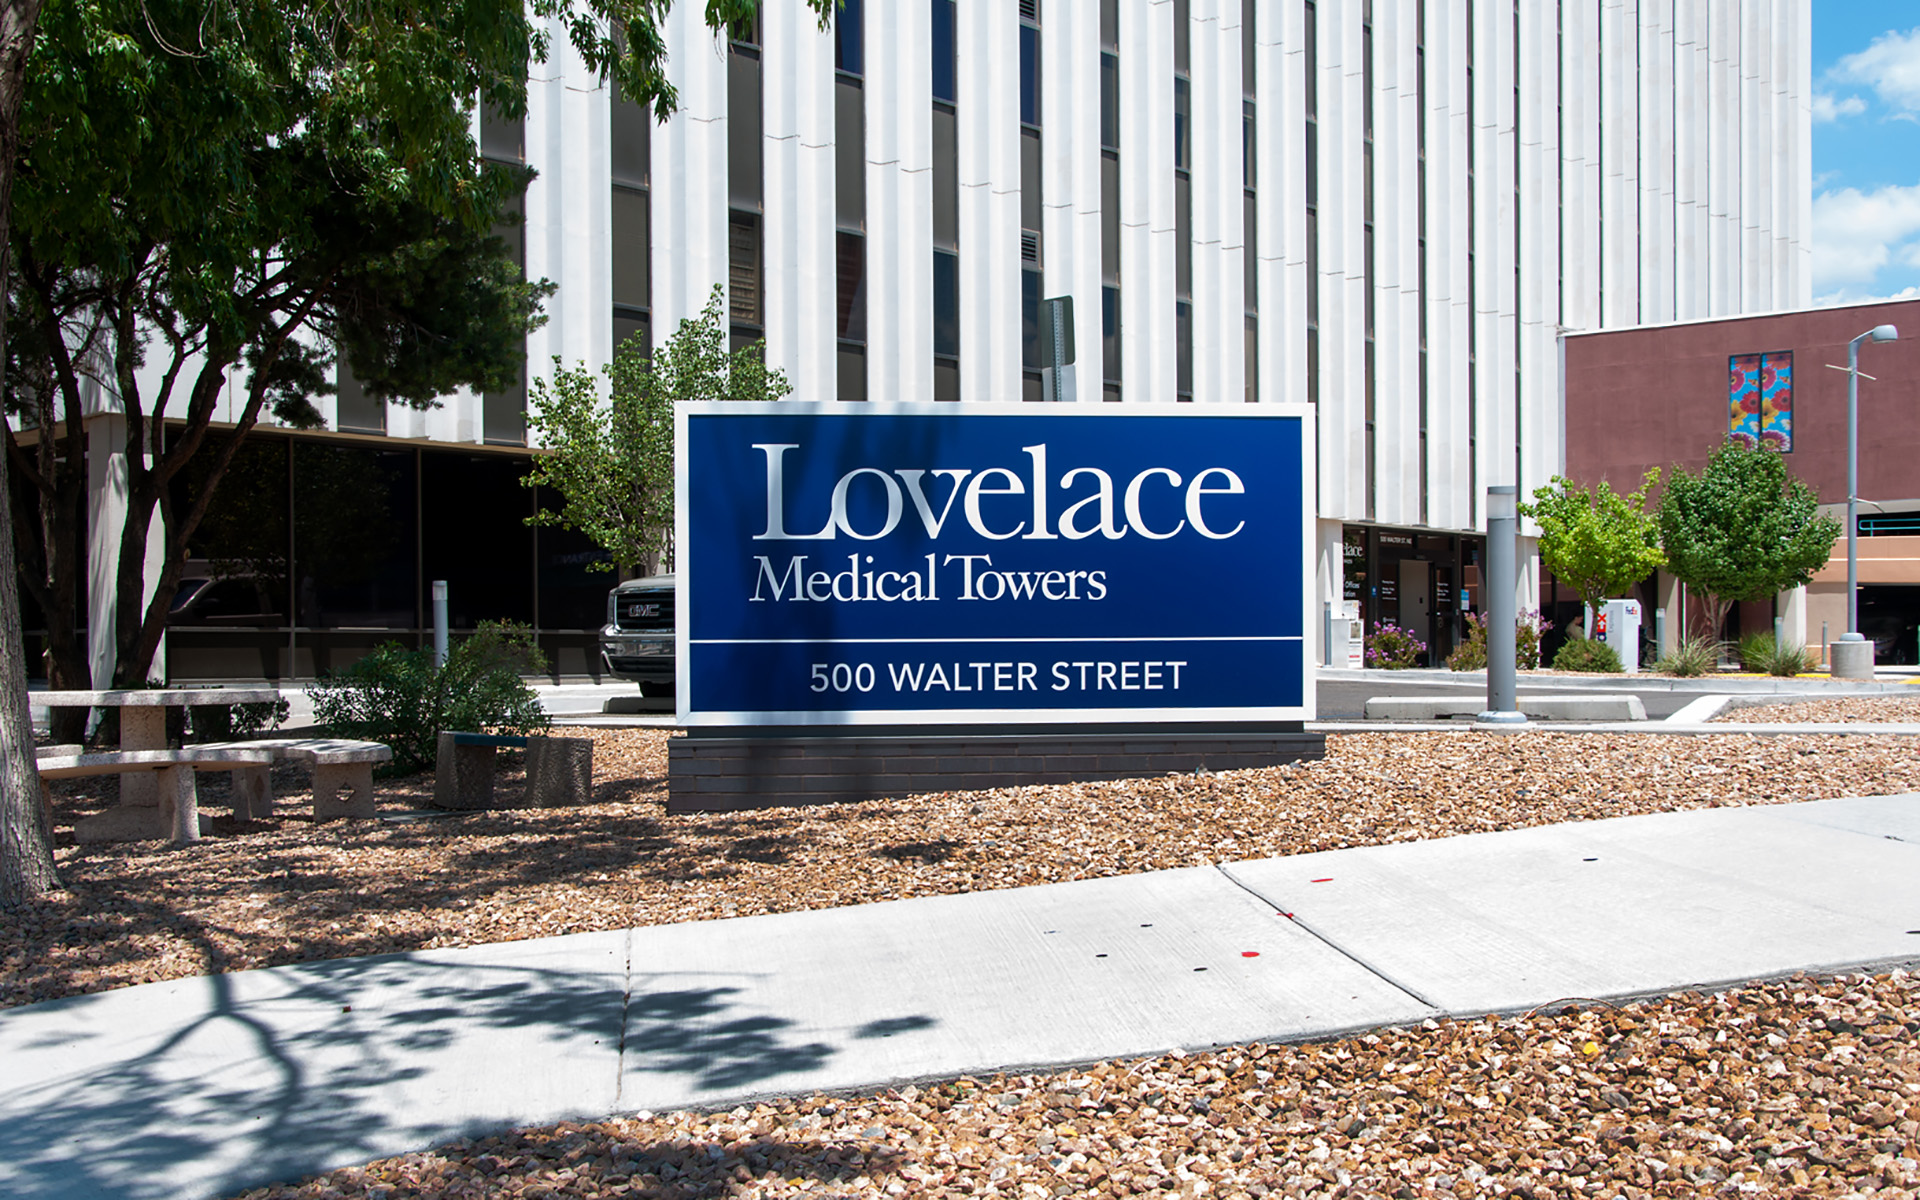 Lovelace Medical Towers